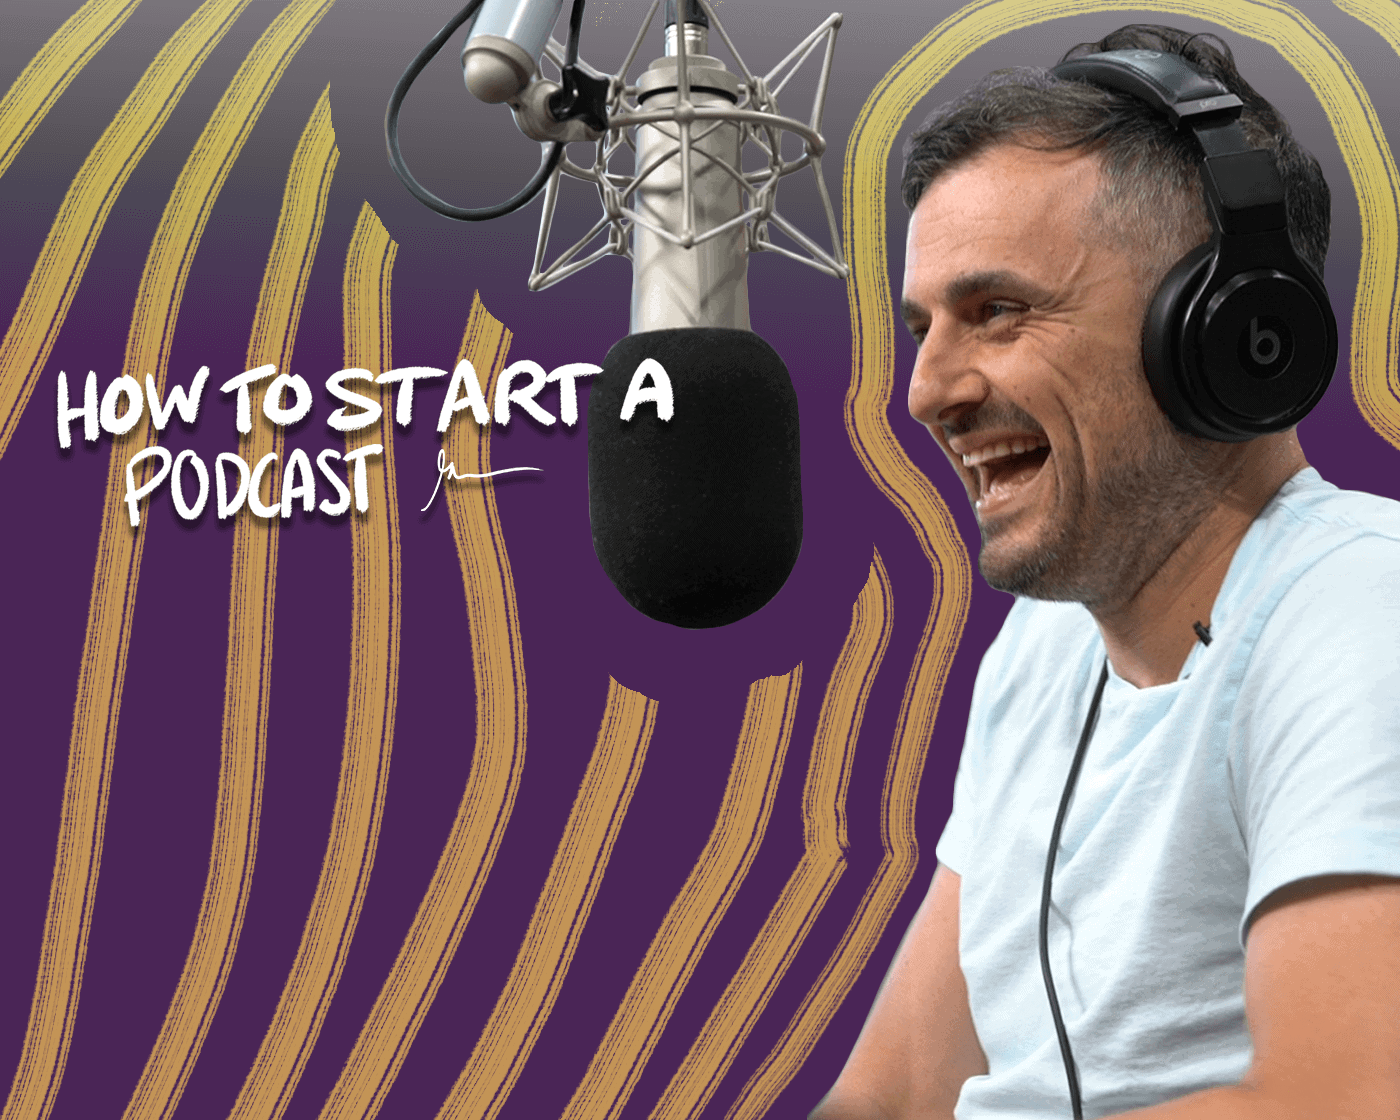 How to Start a Podcast: Complete Step-by-Step Guide